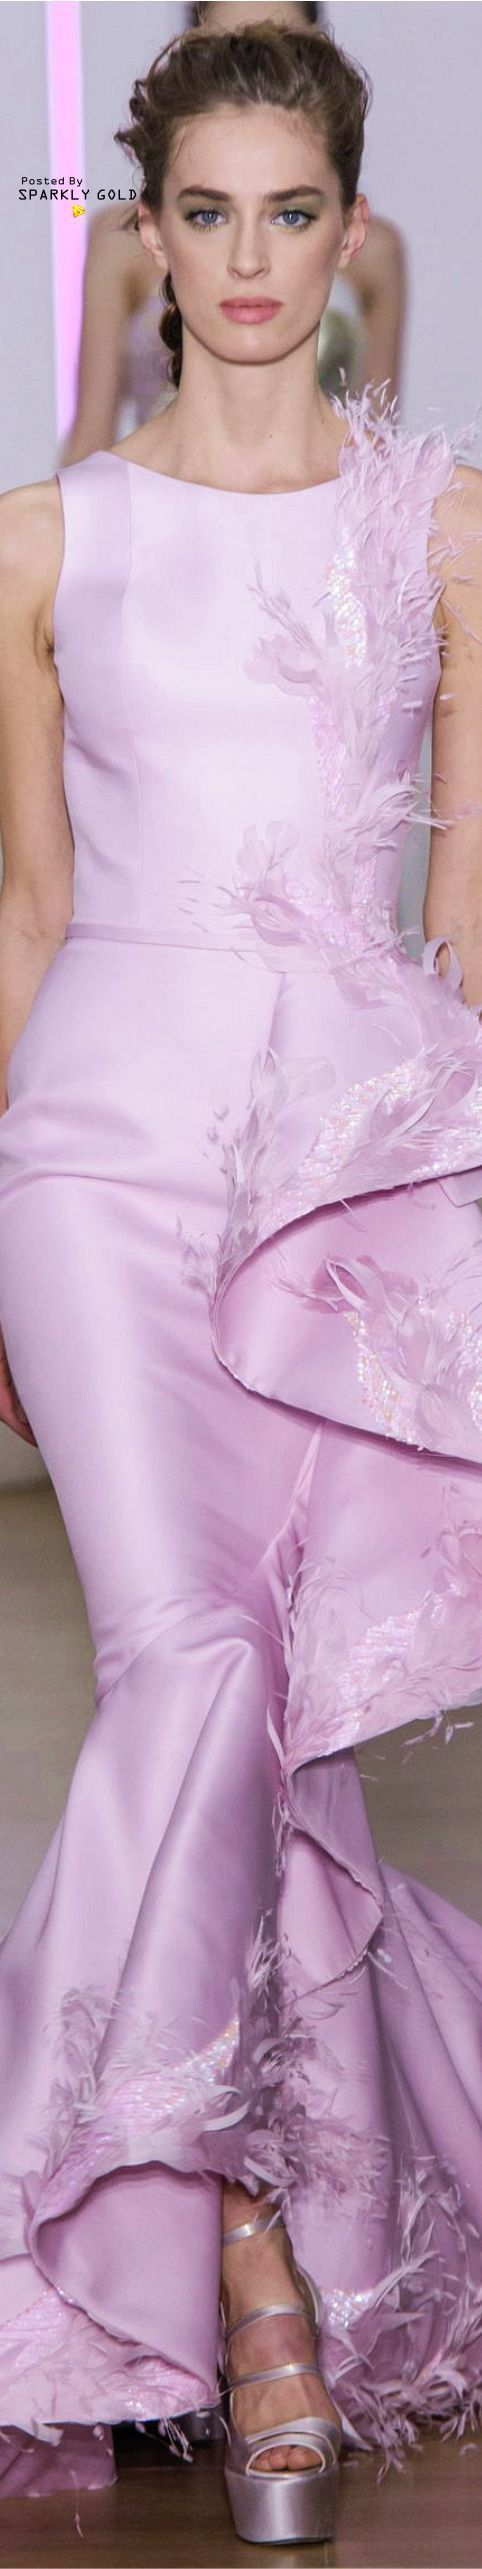 Georges Chakra Spring 2018 Couture